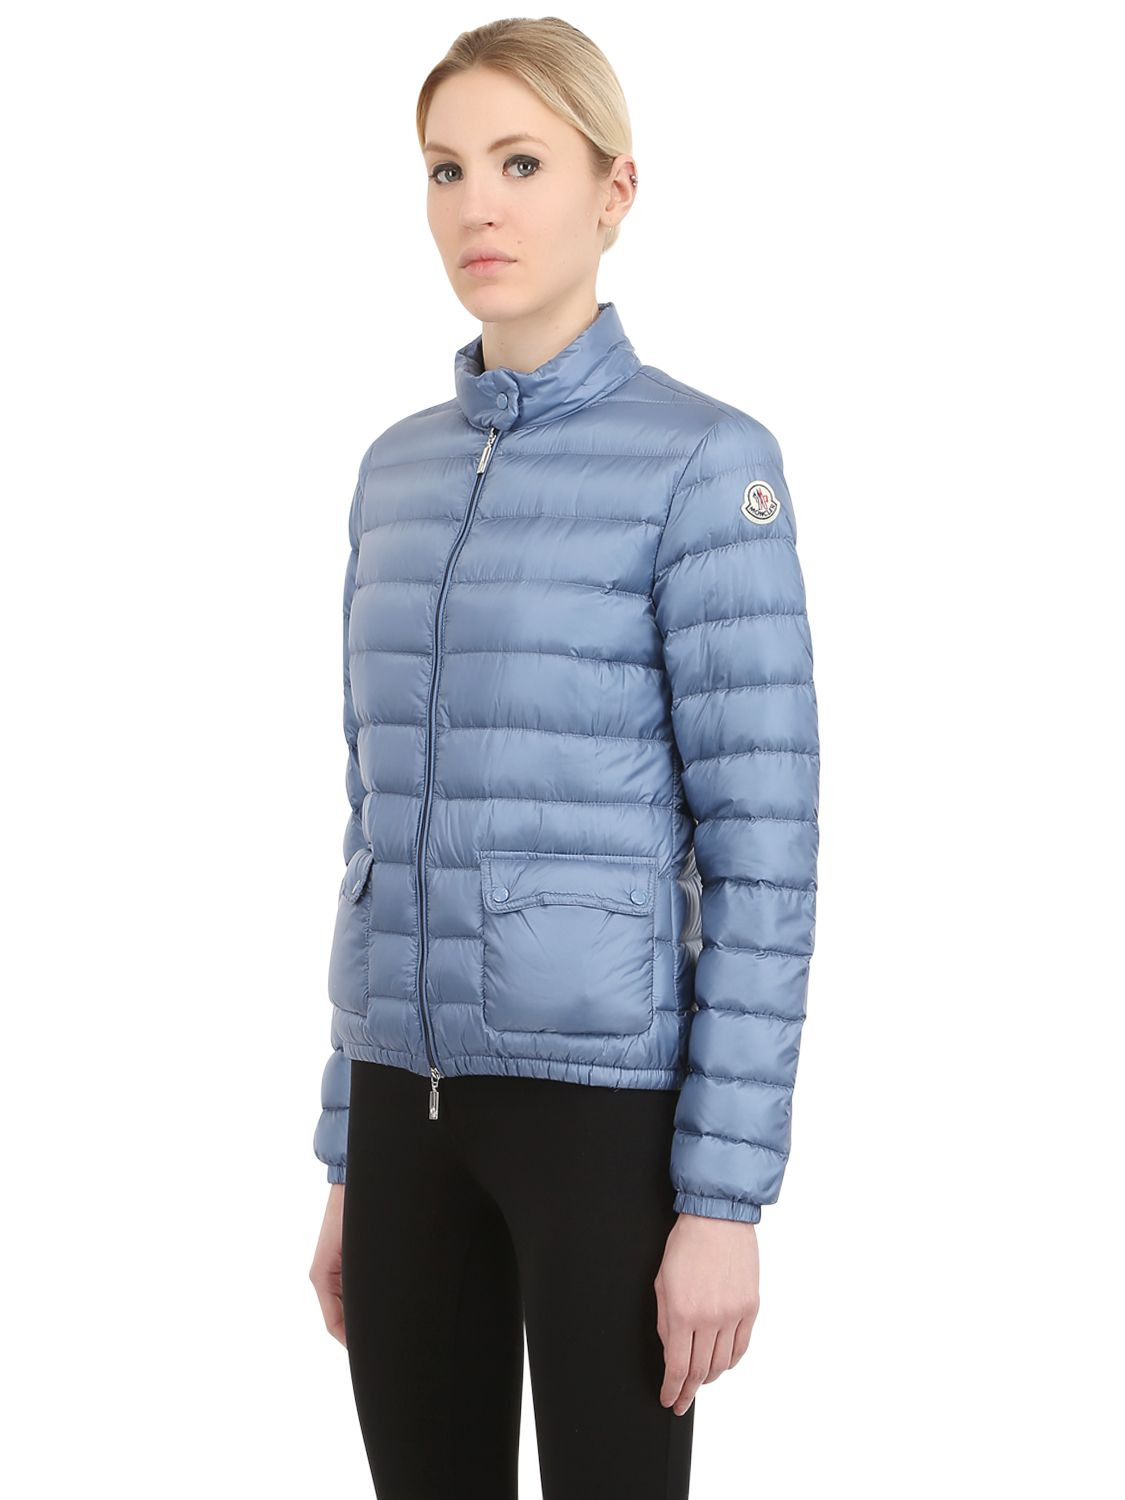 moncler lans down jacket womens menu for sale moncler sale. Black Bedroom Furniture Sets. Home Design Ideas